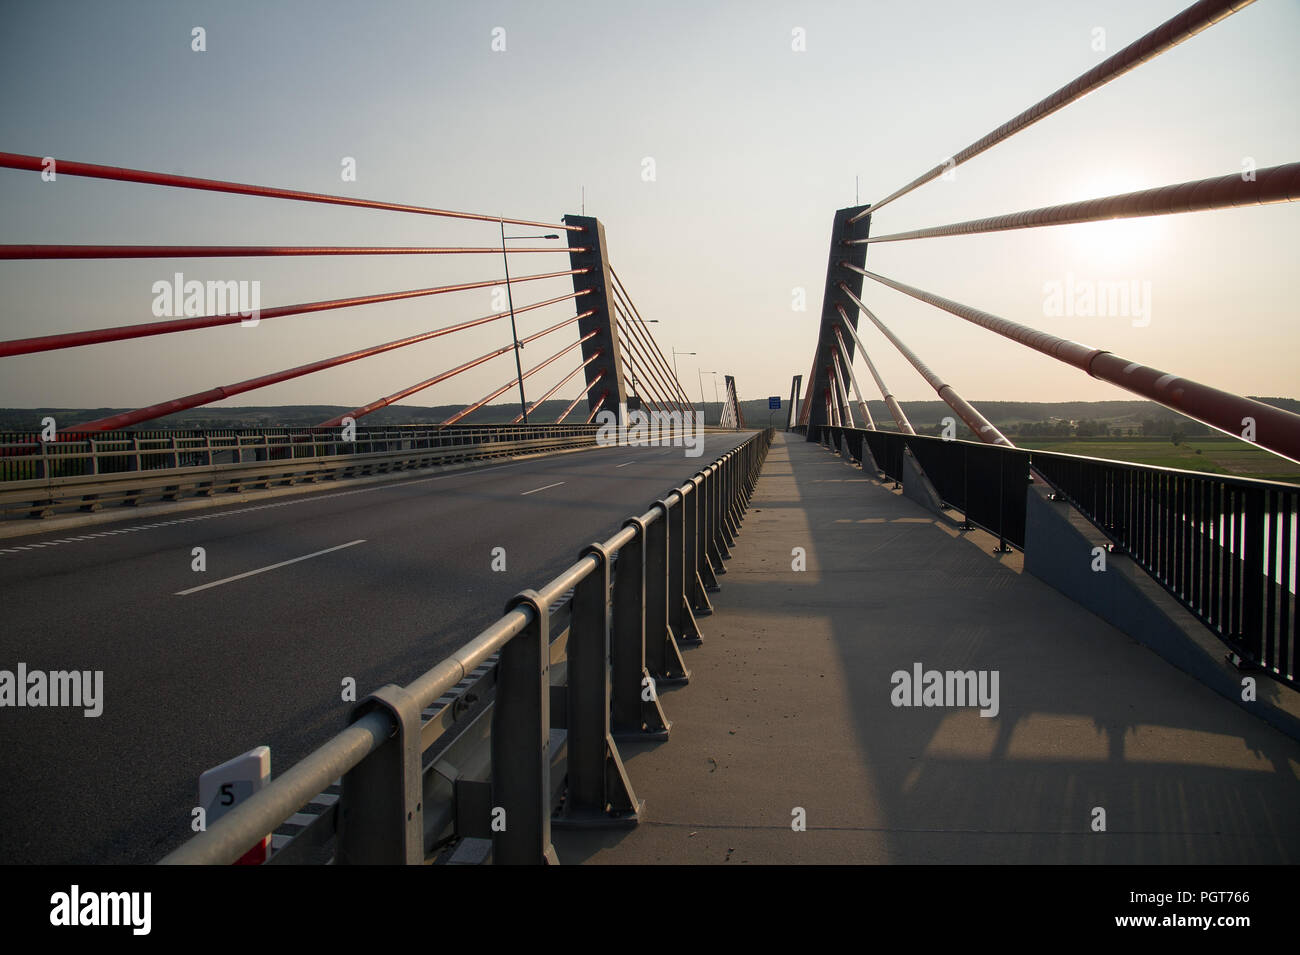 Extradosed bridge over Vistula River in Dolina Dolnej Wisly (Lower Vistula Valley) in Korzeniewo, Poland. August 23rd 2018, is the largest extradosed  - Stock Image